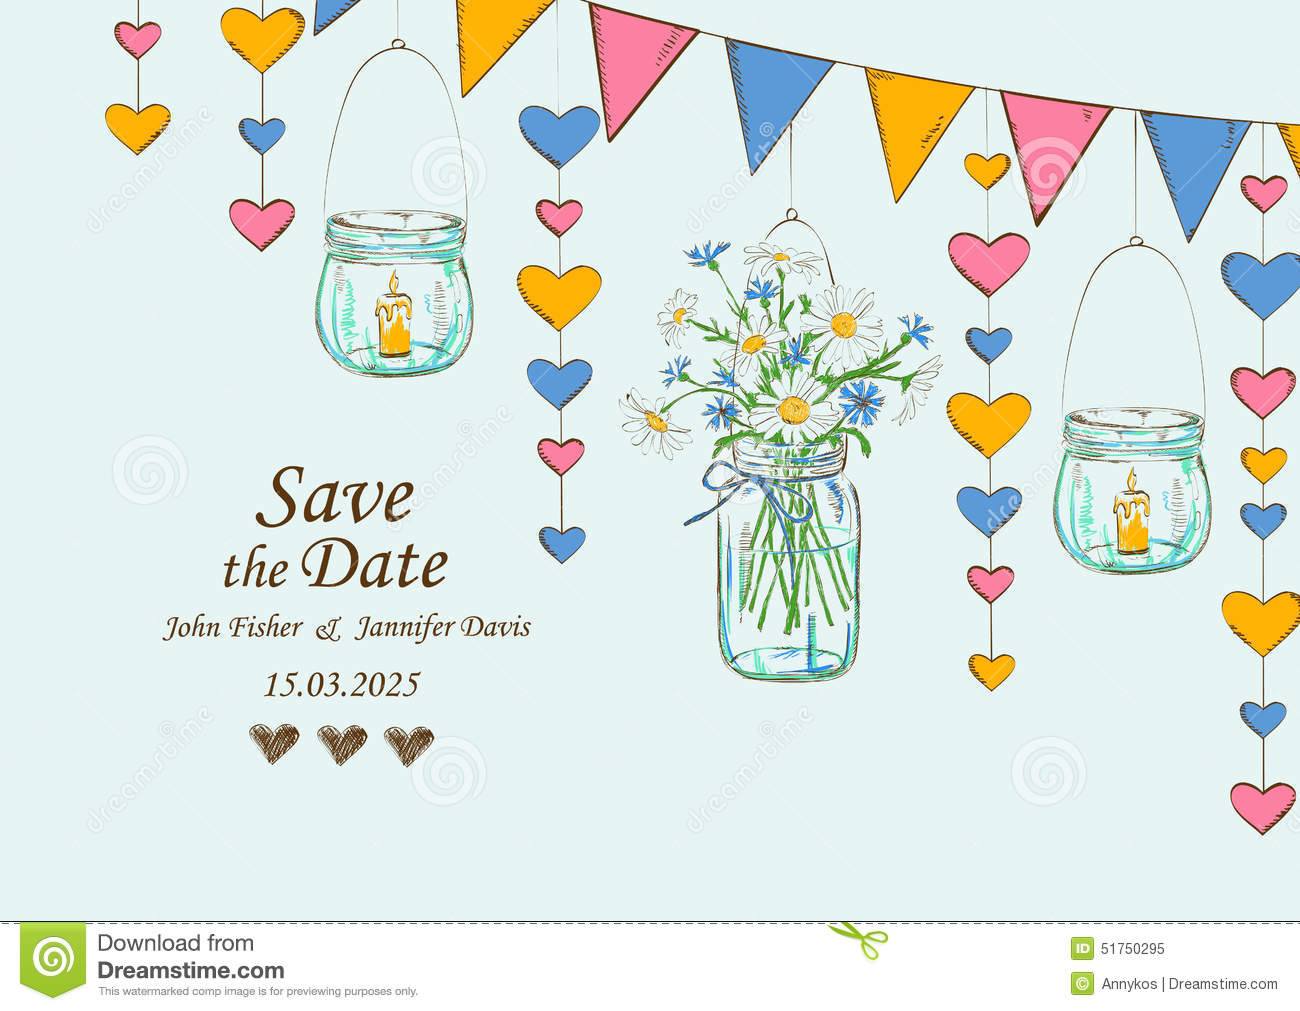 Wedding Invitation With Rustic Decoration Of Hanging Mason Jars Flowers Candles And Garlands Save The Date Concept